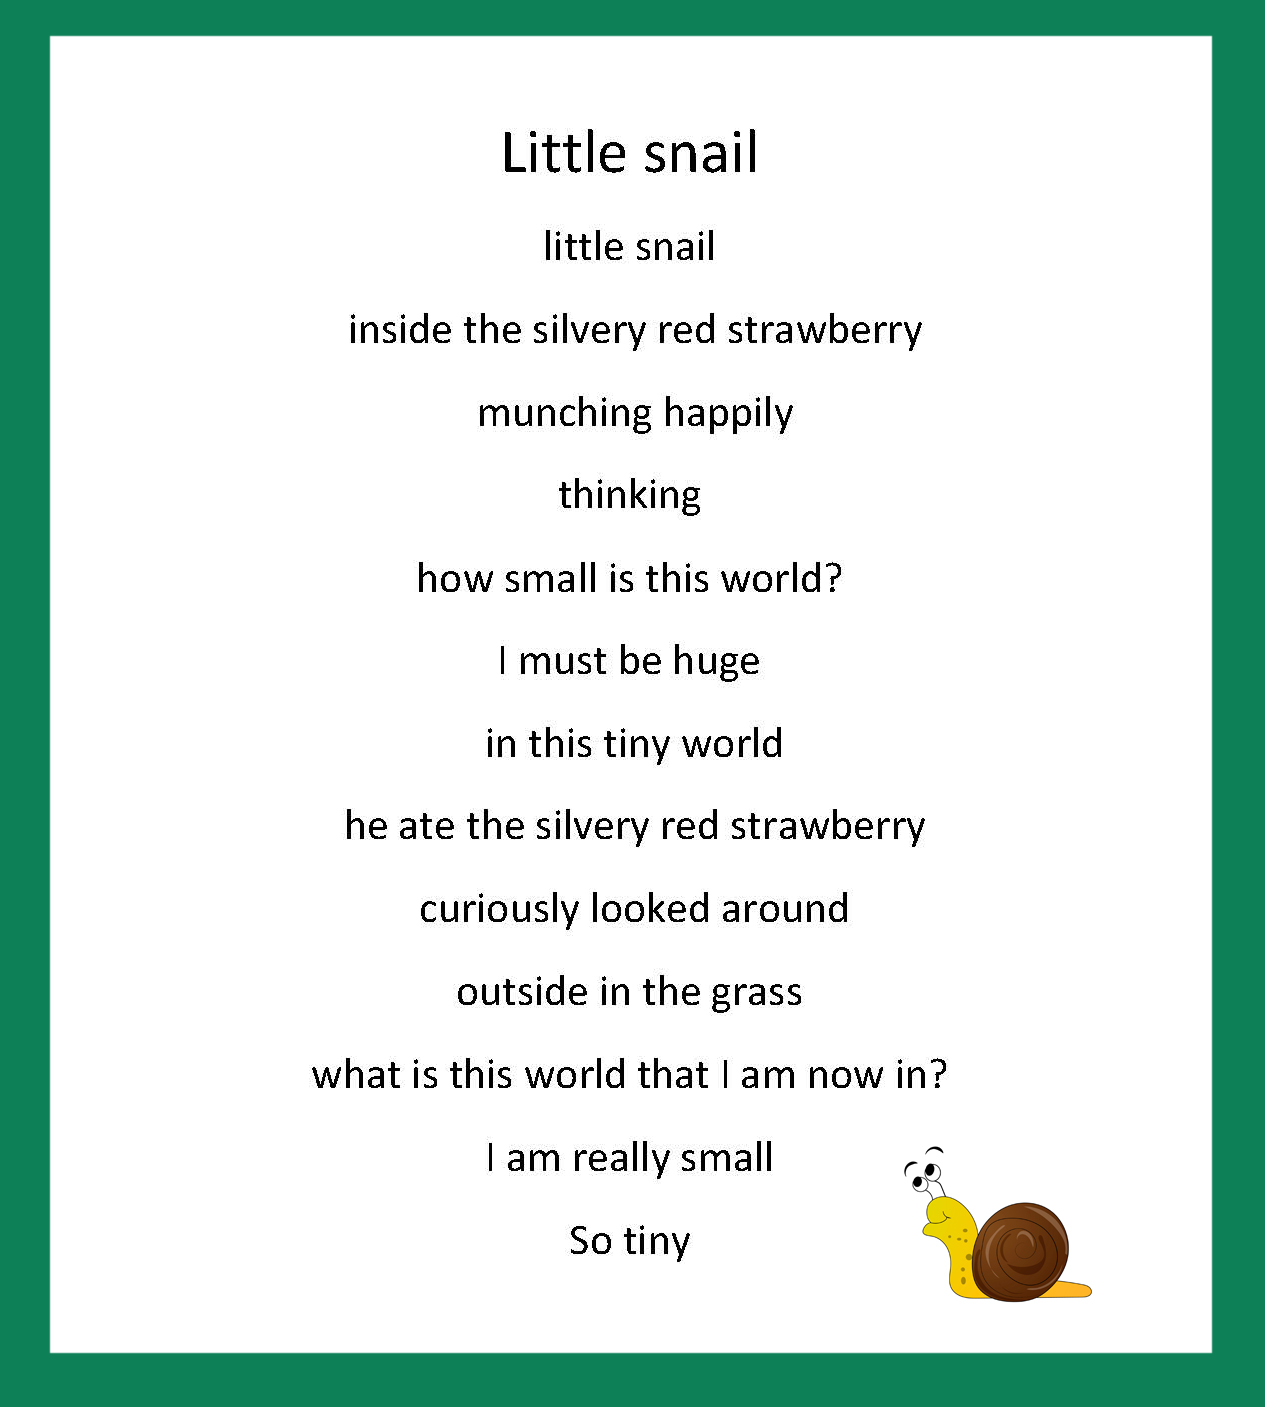 Virtual School Victoria » Year 4 Poetry